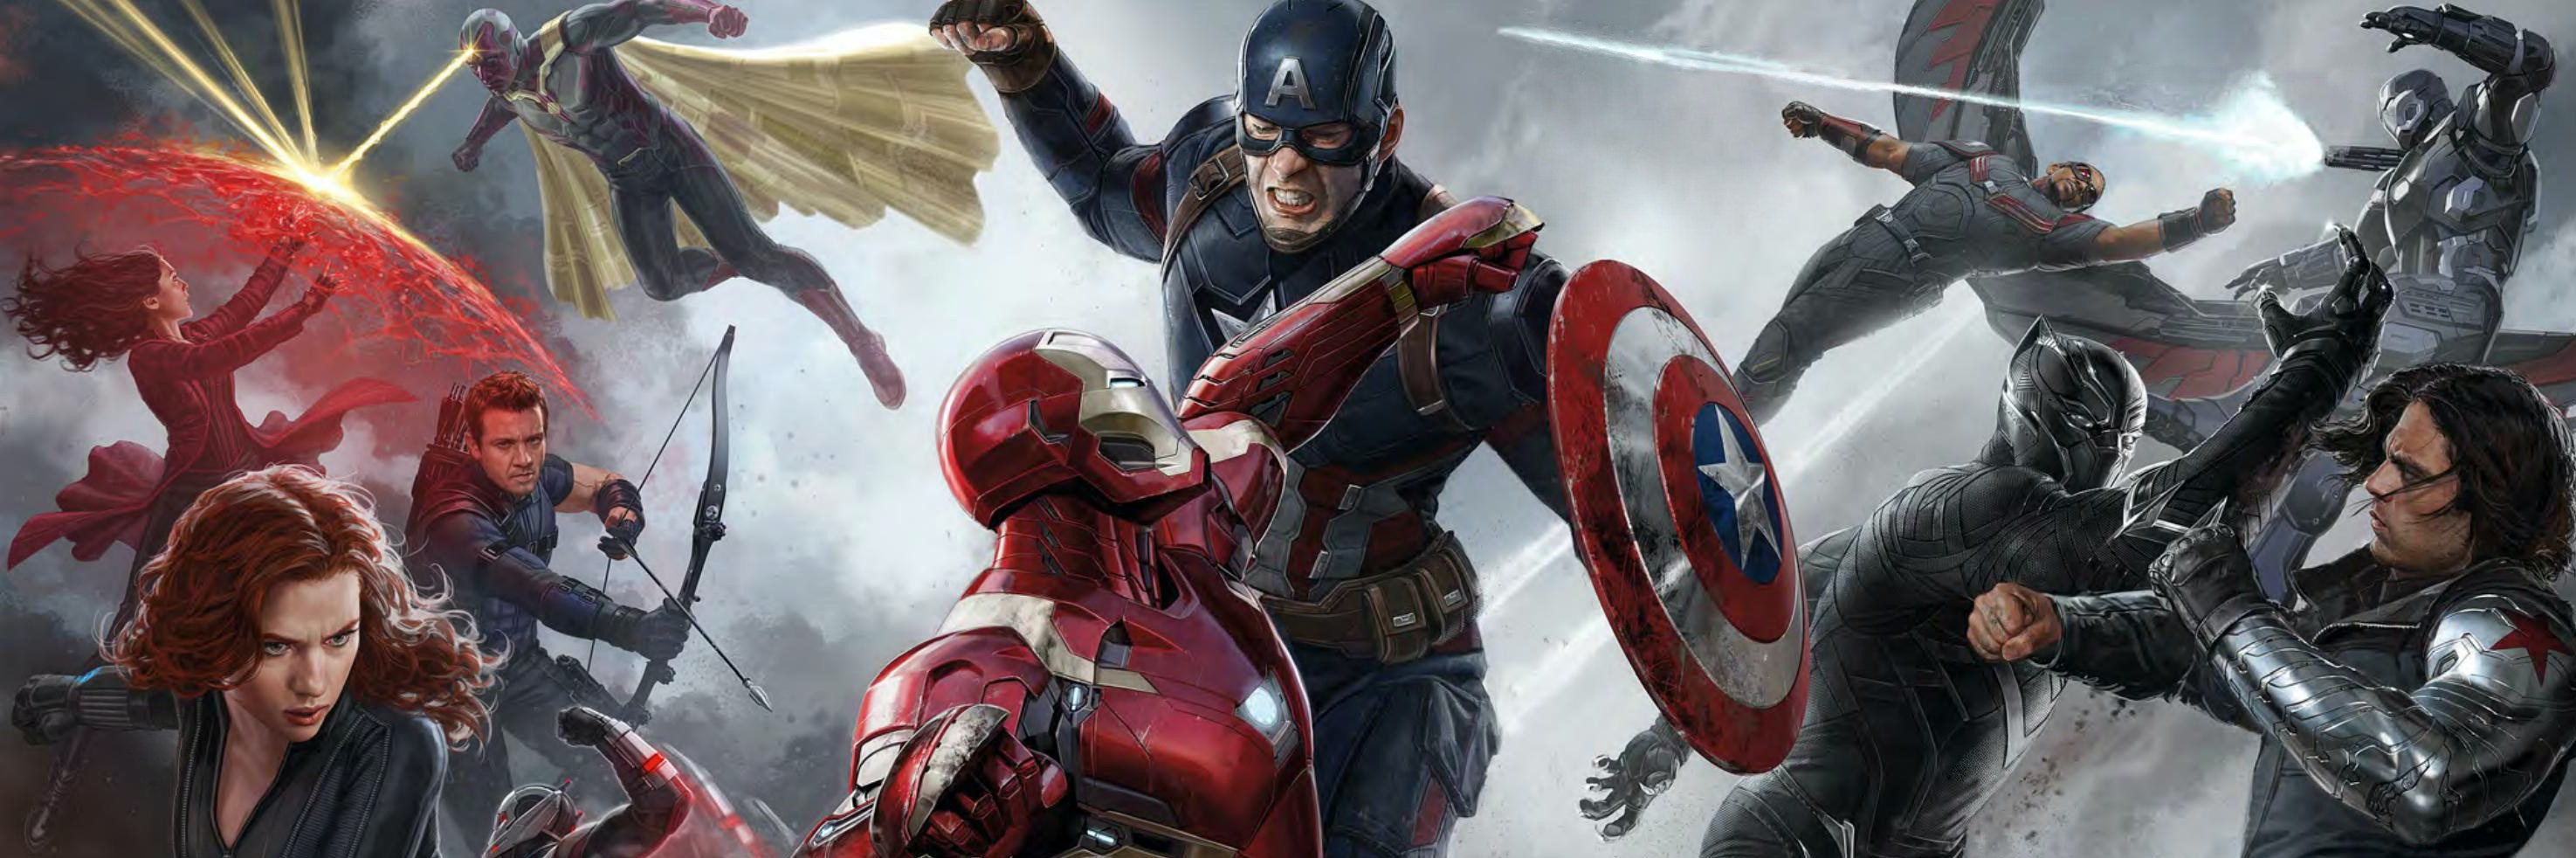 Captain America: Civil War from Marvel Studios and Disney